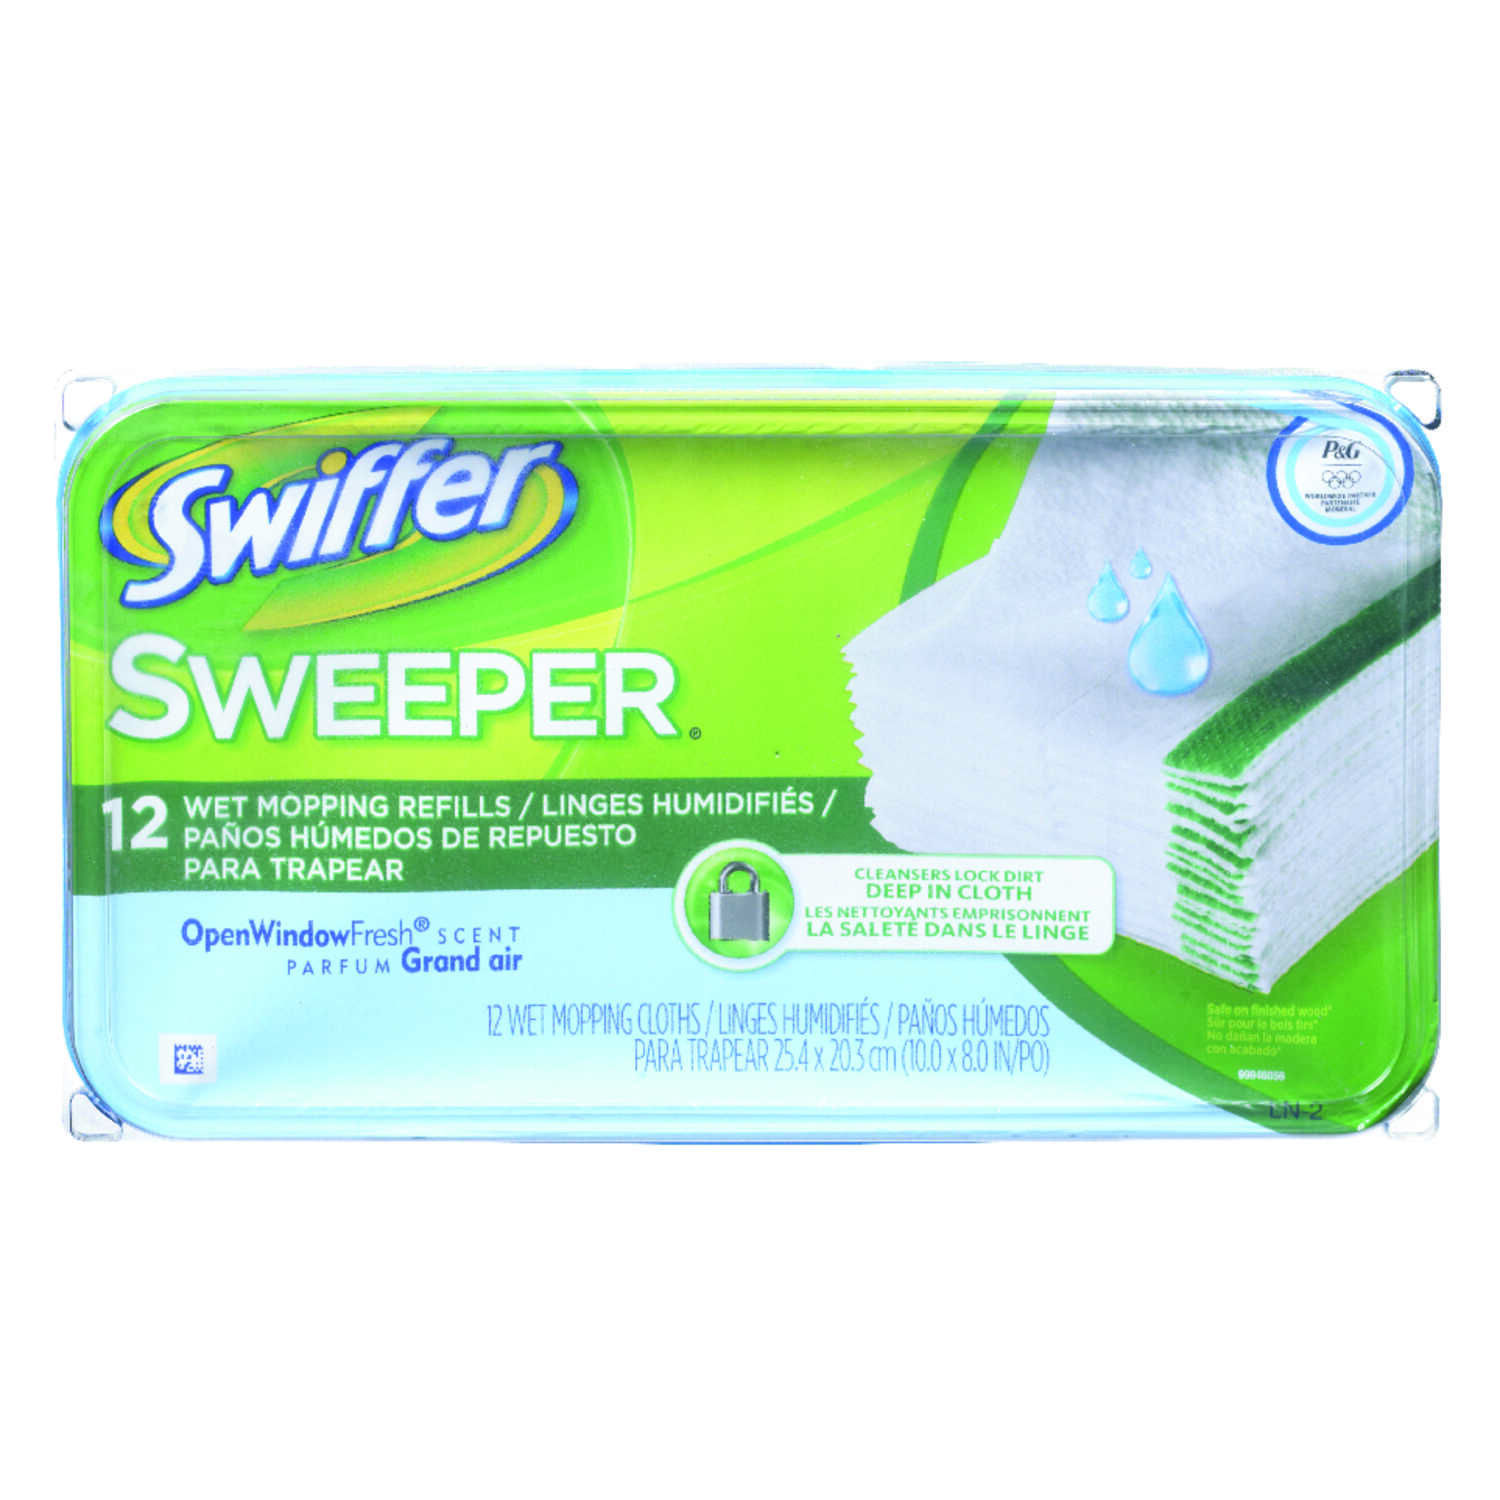 Swiffer  Sweeper  8 in. L Mop Refill  Cloth  12 pk